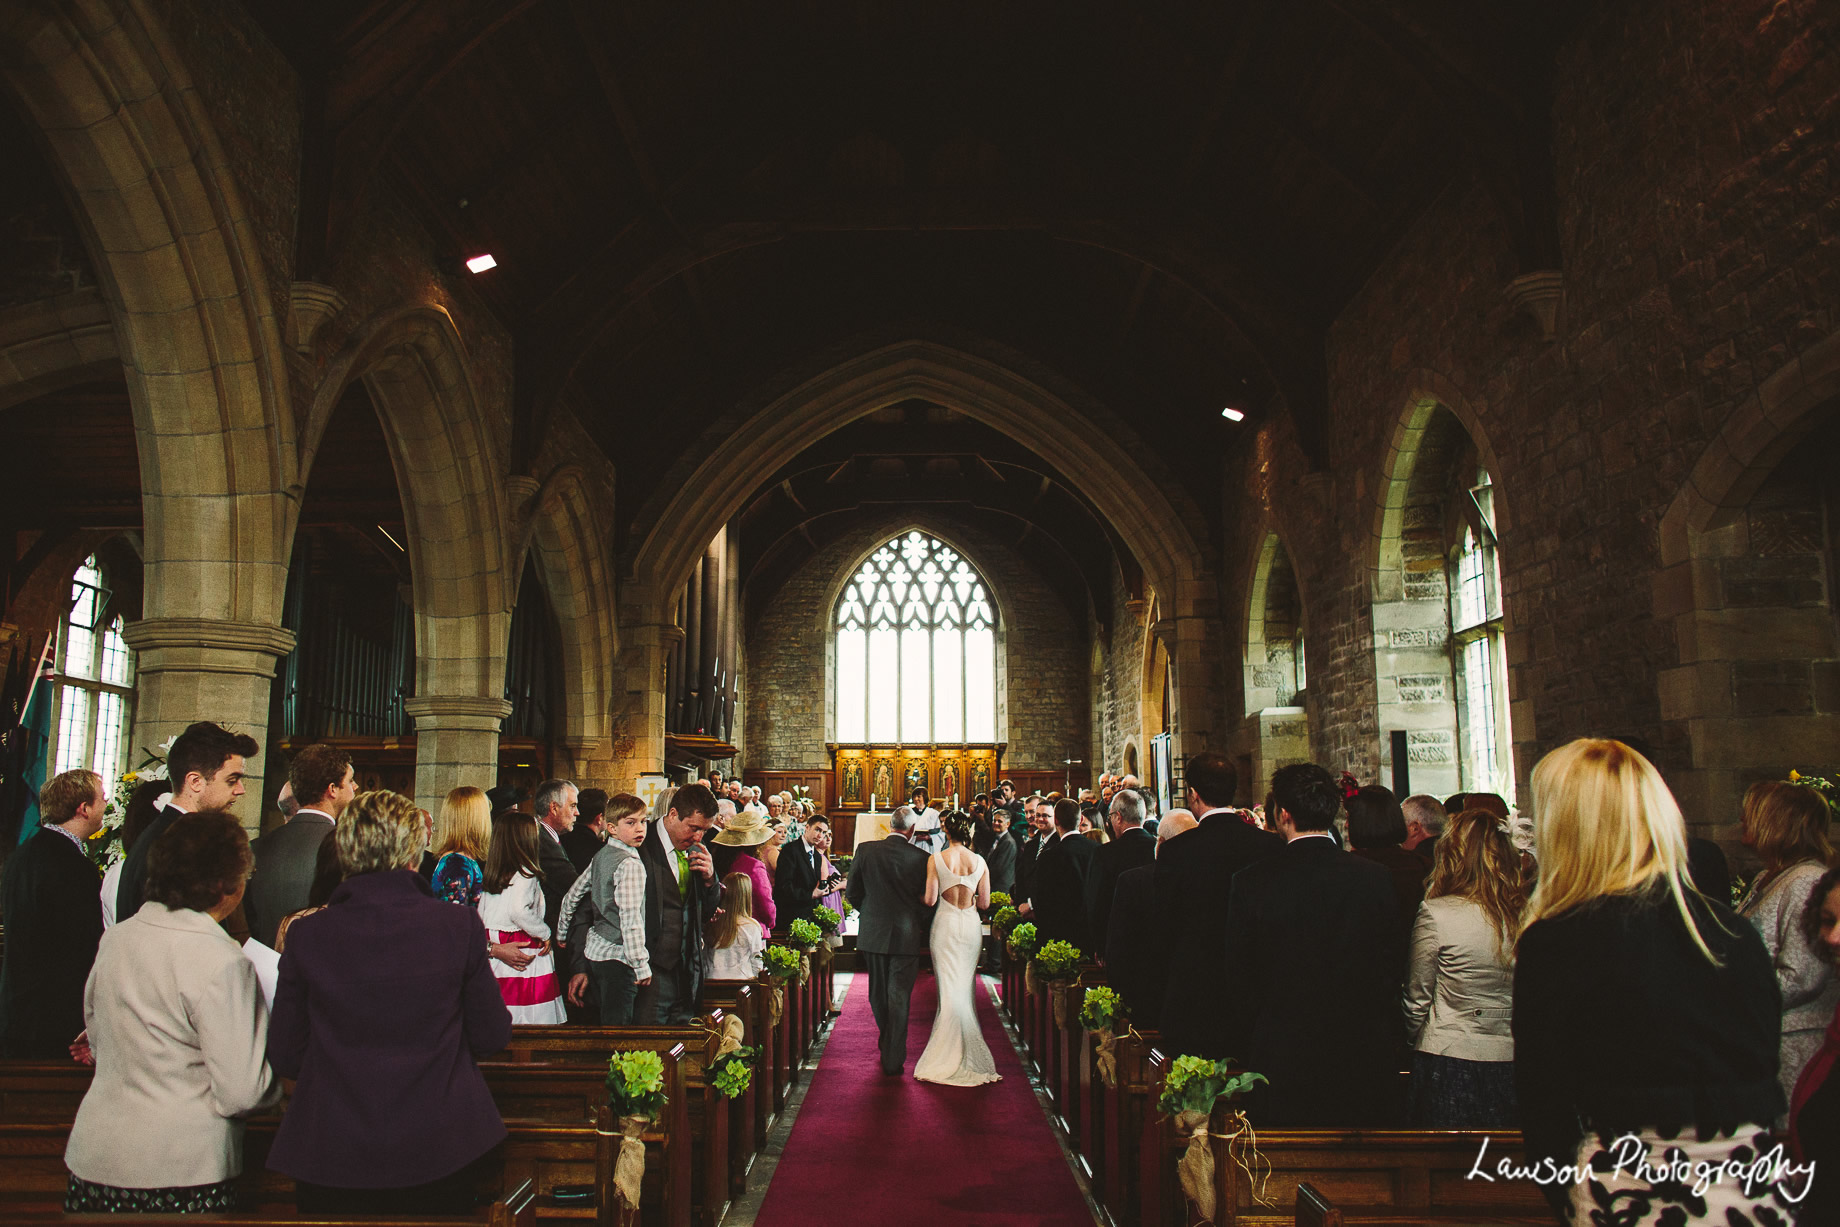 Foxley-Photography-An-Epic-Wedding-Journey-031